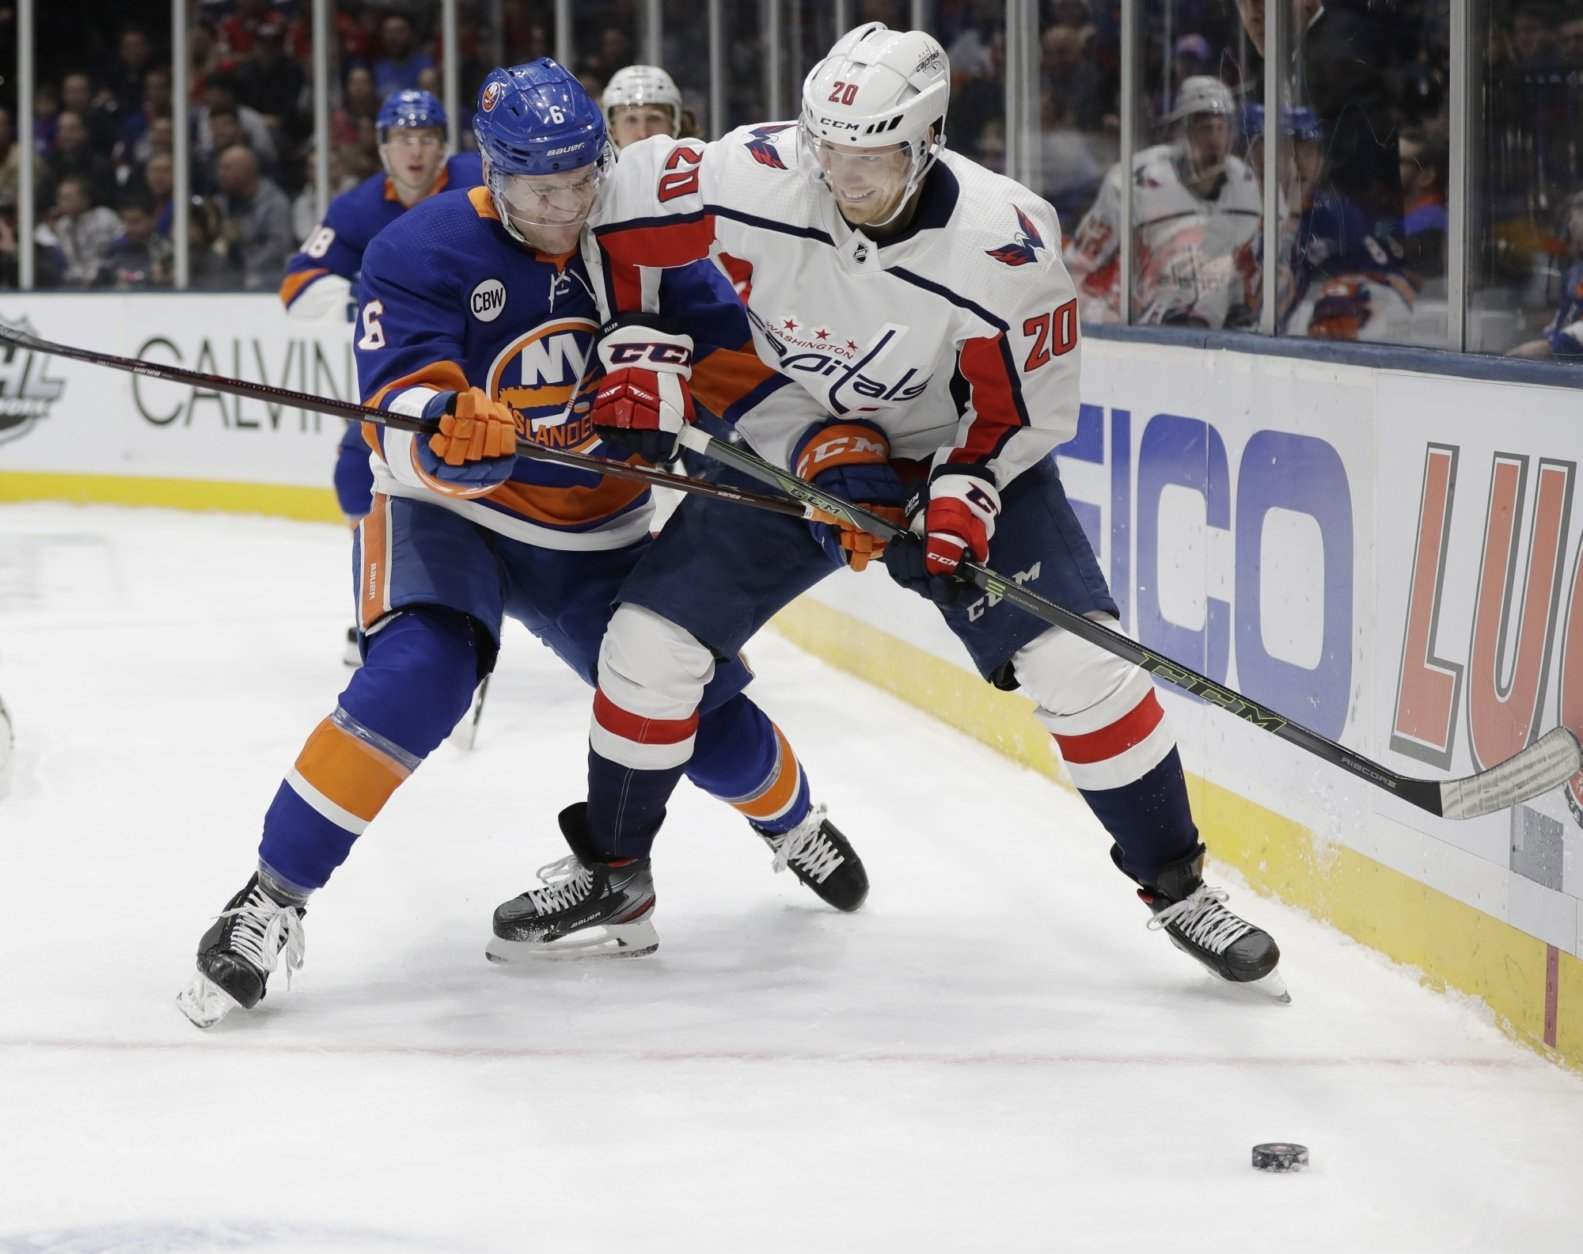 New York Islanders' Ryan Pulock (6) fights for control of the puck with Washington Capitals' Lars Eller (20) during the first period of an NHL hockey game Friday, March 1, 2019, in Uniondale, N.Y. (AP Photo/Frank Franklin II)